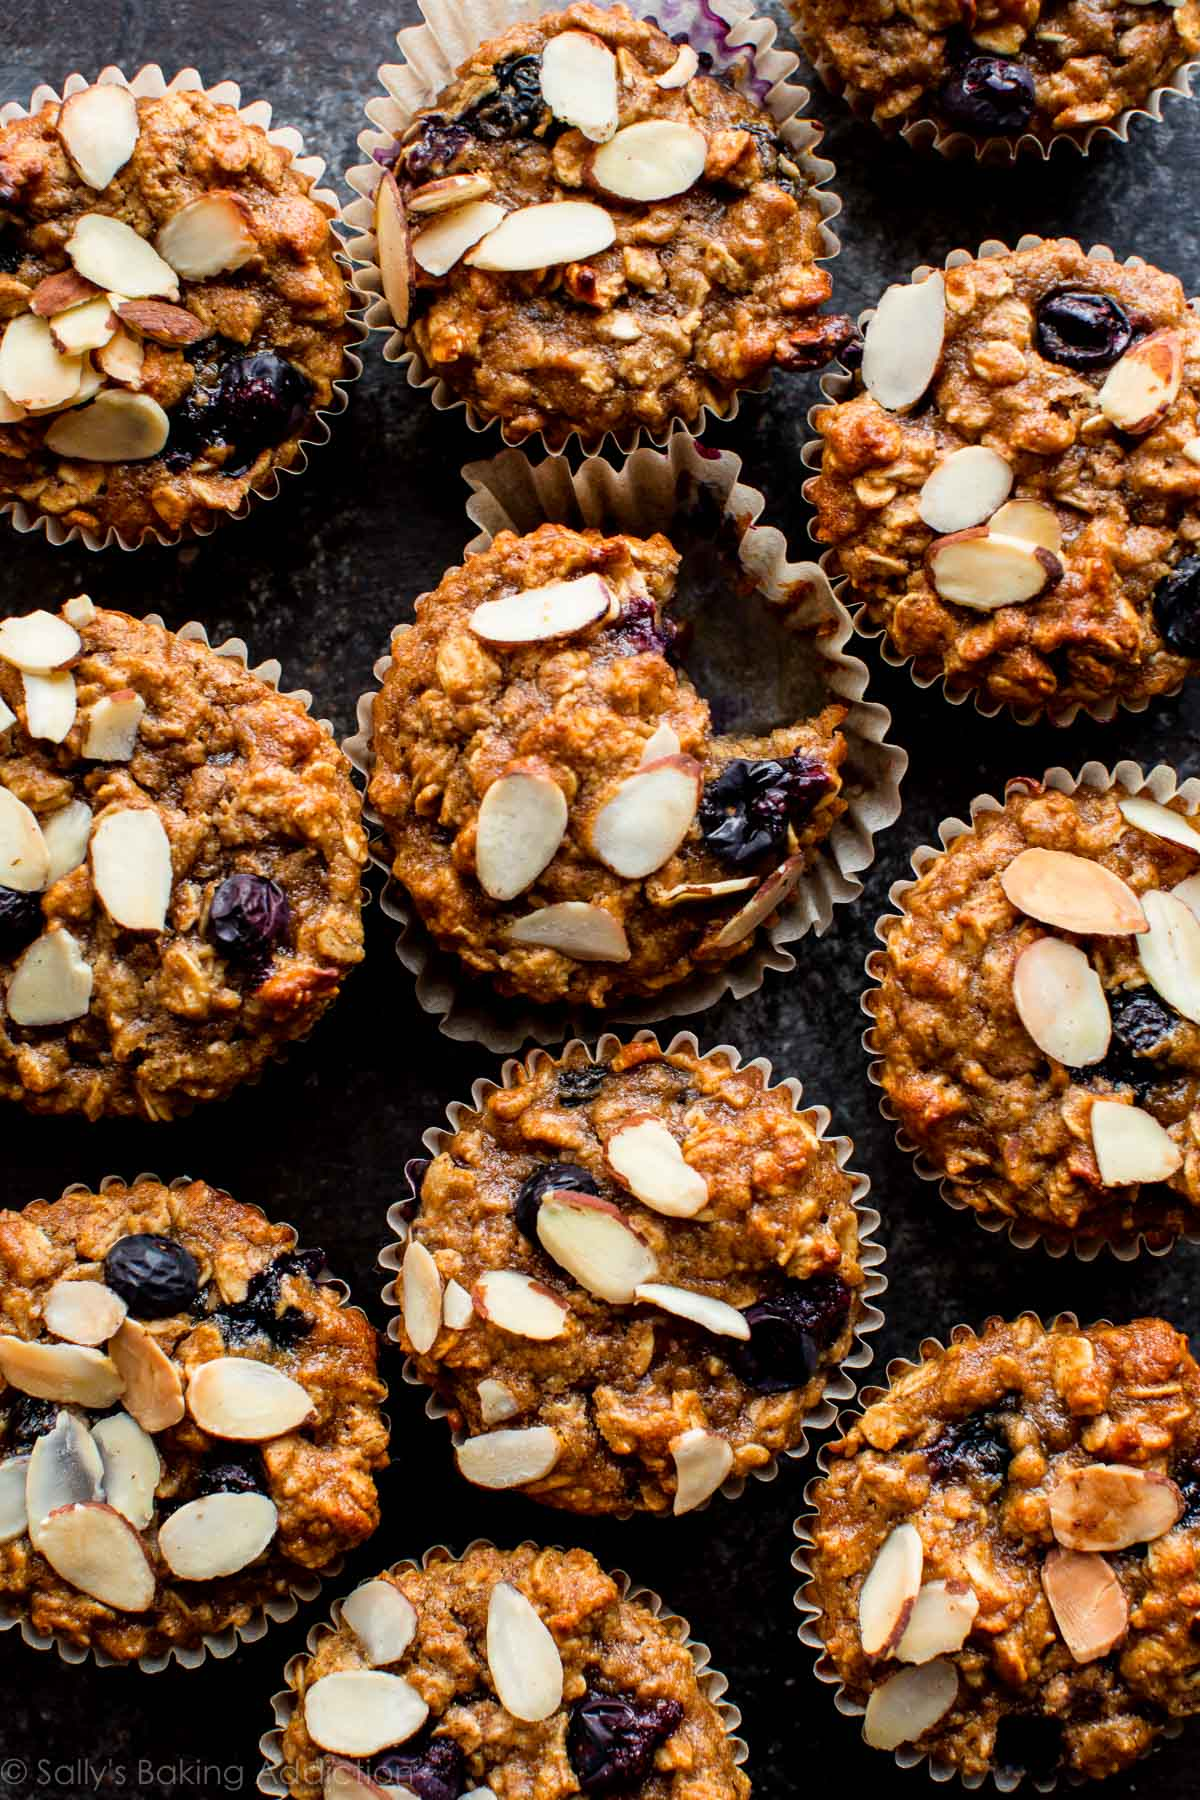 SW recipe: Blueberry, oat, cinnamon and almond muffins